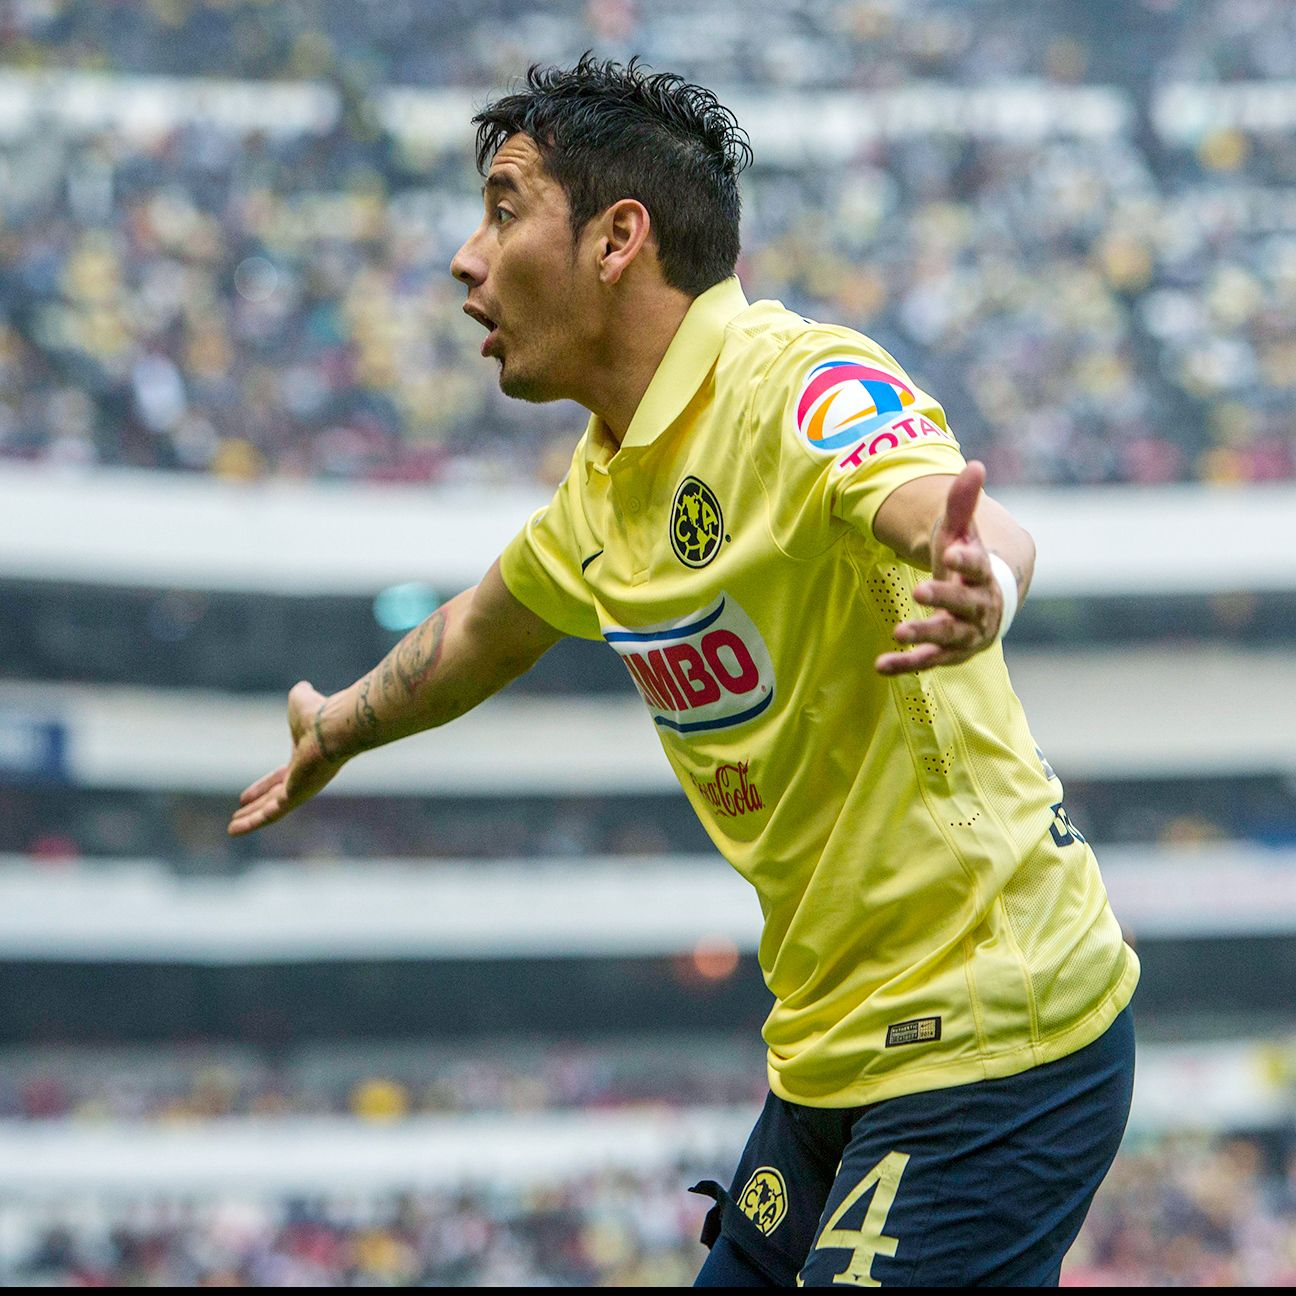 Talk of coaching changes and internal strife have riled Rubens Sambueza and Club America's Liguilla campaign.